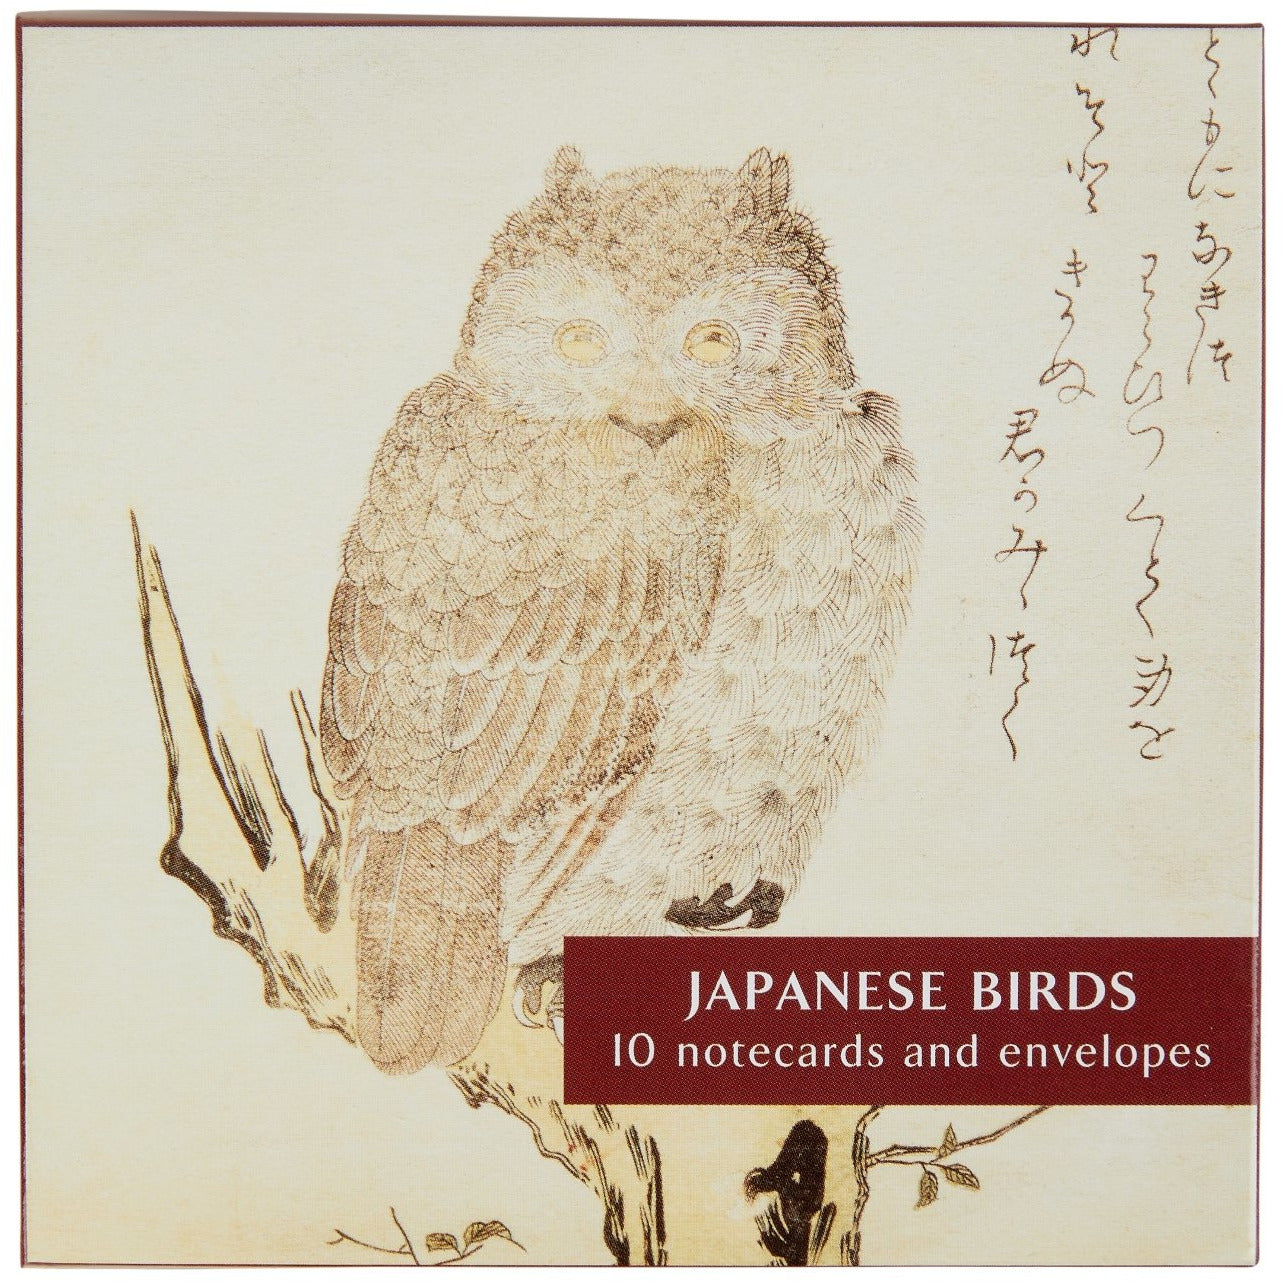 Featured image for the project: Japanese Birds - Notecard pack